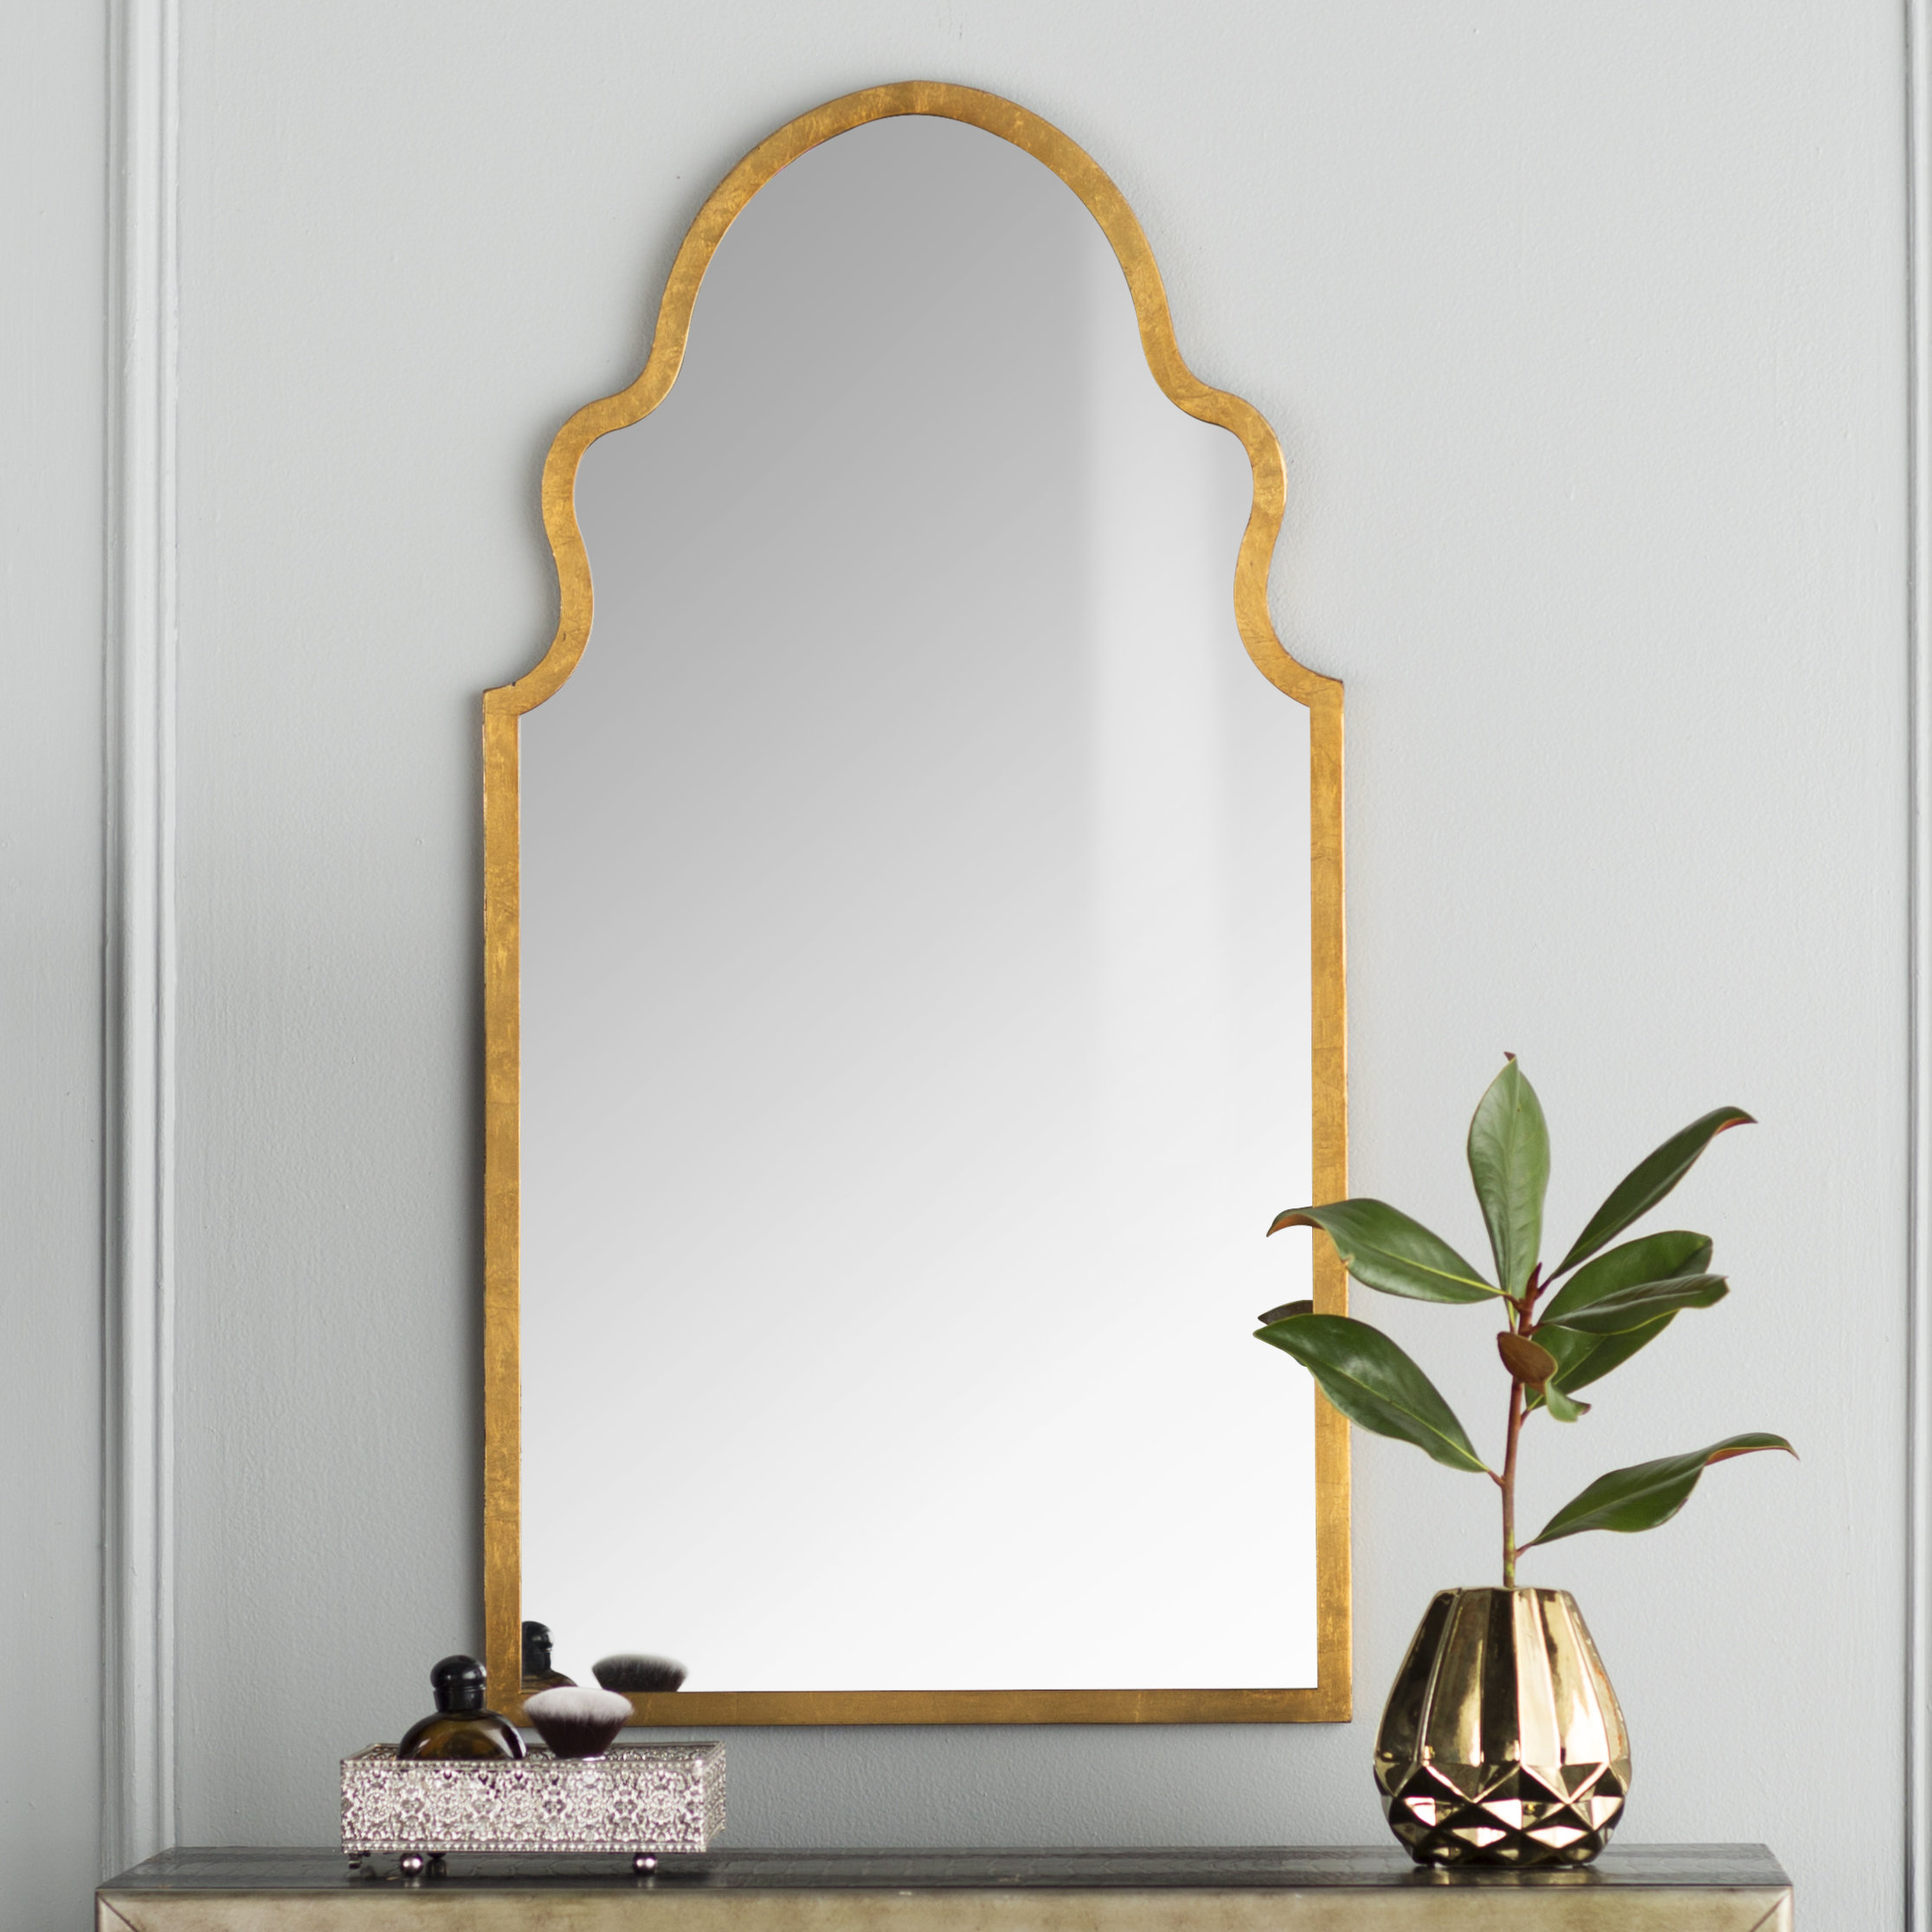 Menachem Modern & Contemporary Accent Mirror Pertaining To Most Current Astrid Modern & Contemporary Accent Mirrors (View 2 of 20)